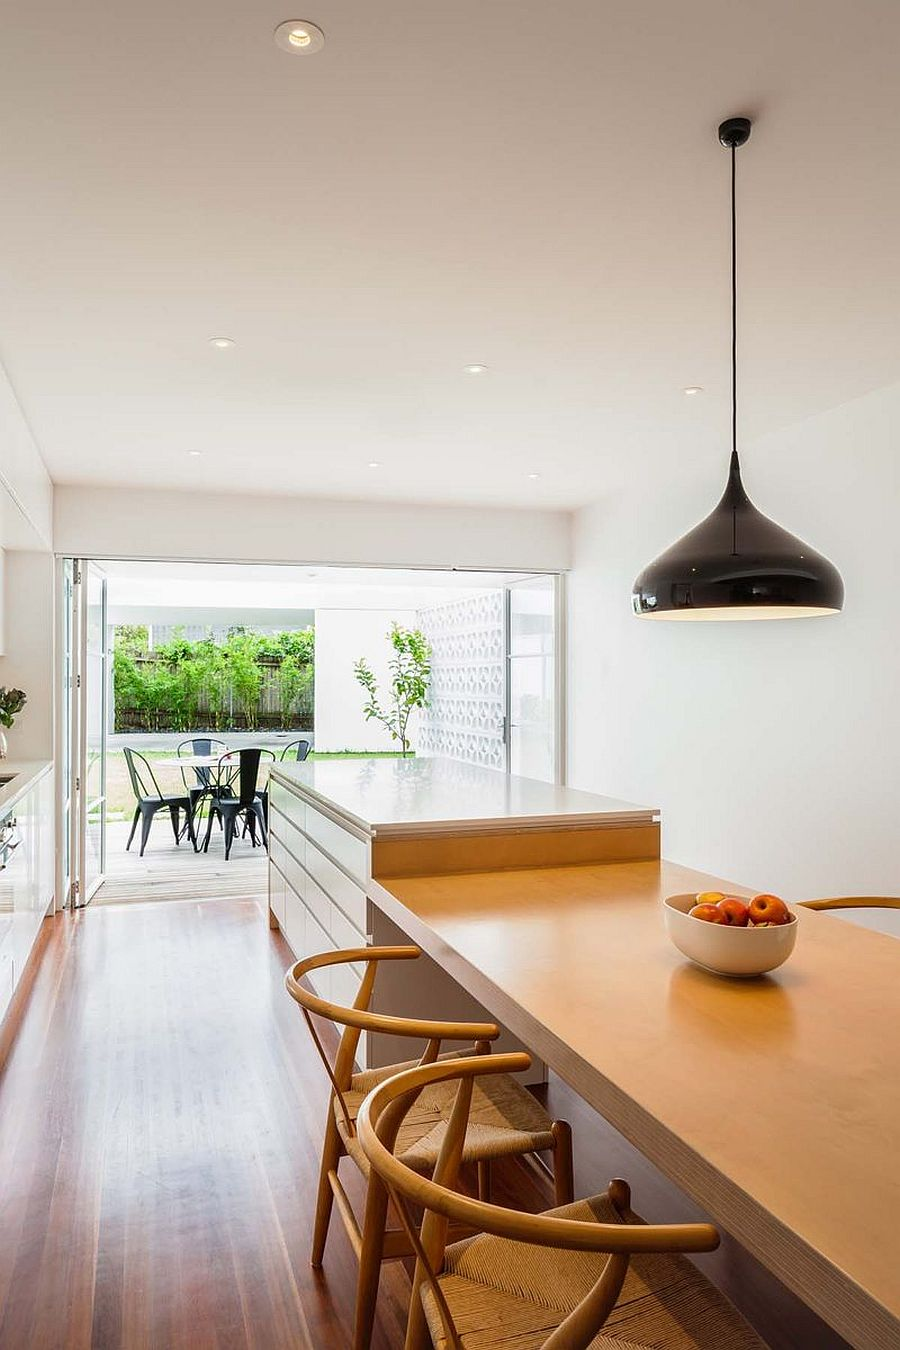 Fabulous kitchen and dining space of the revamped cottage with a large breakfast bar